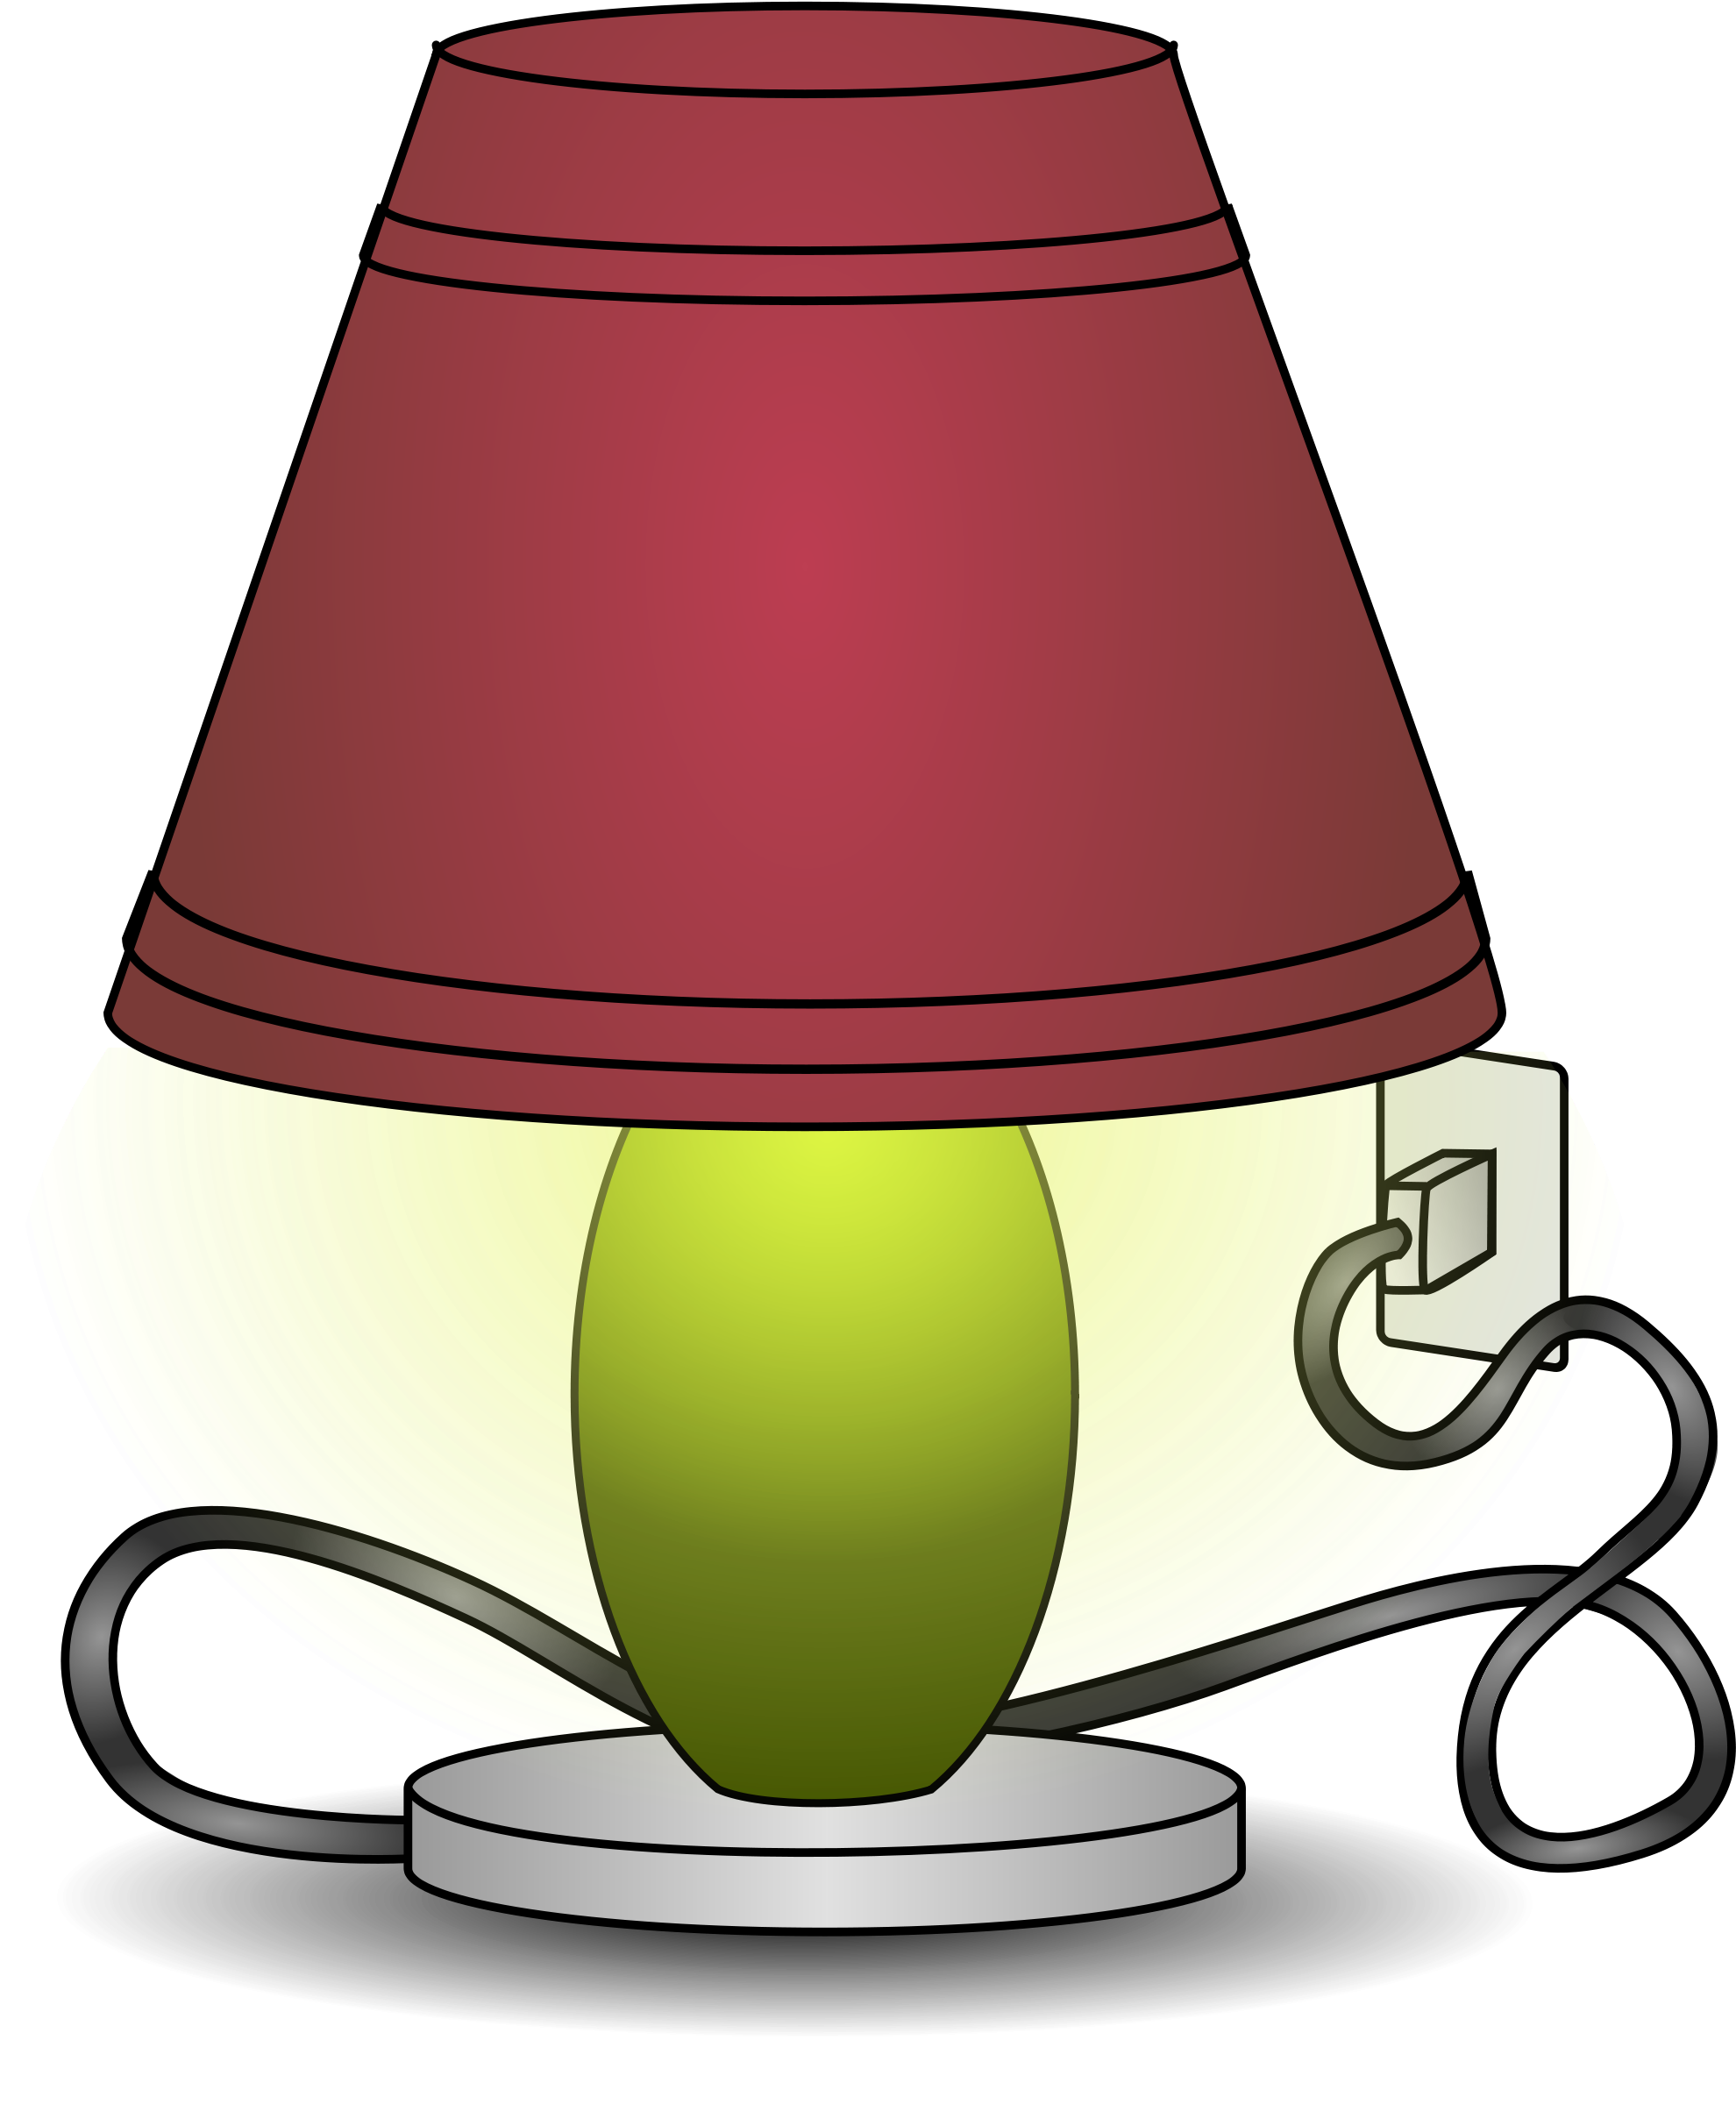 Free Lamps Cliparts, Download Free Clip Art, Free Clip Art.